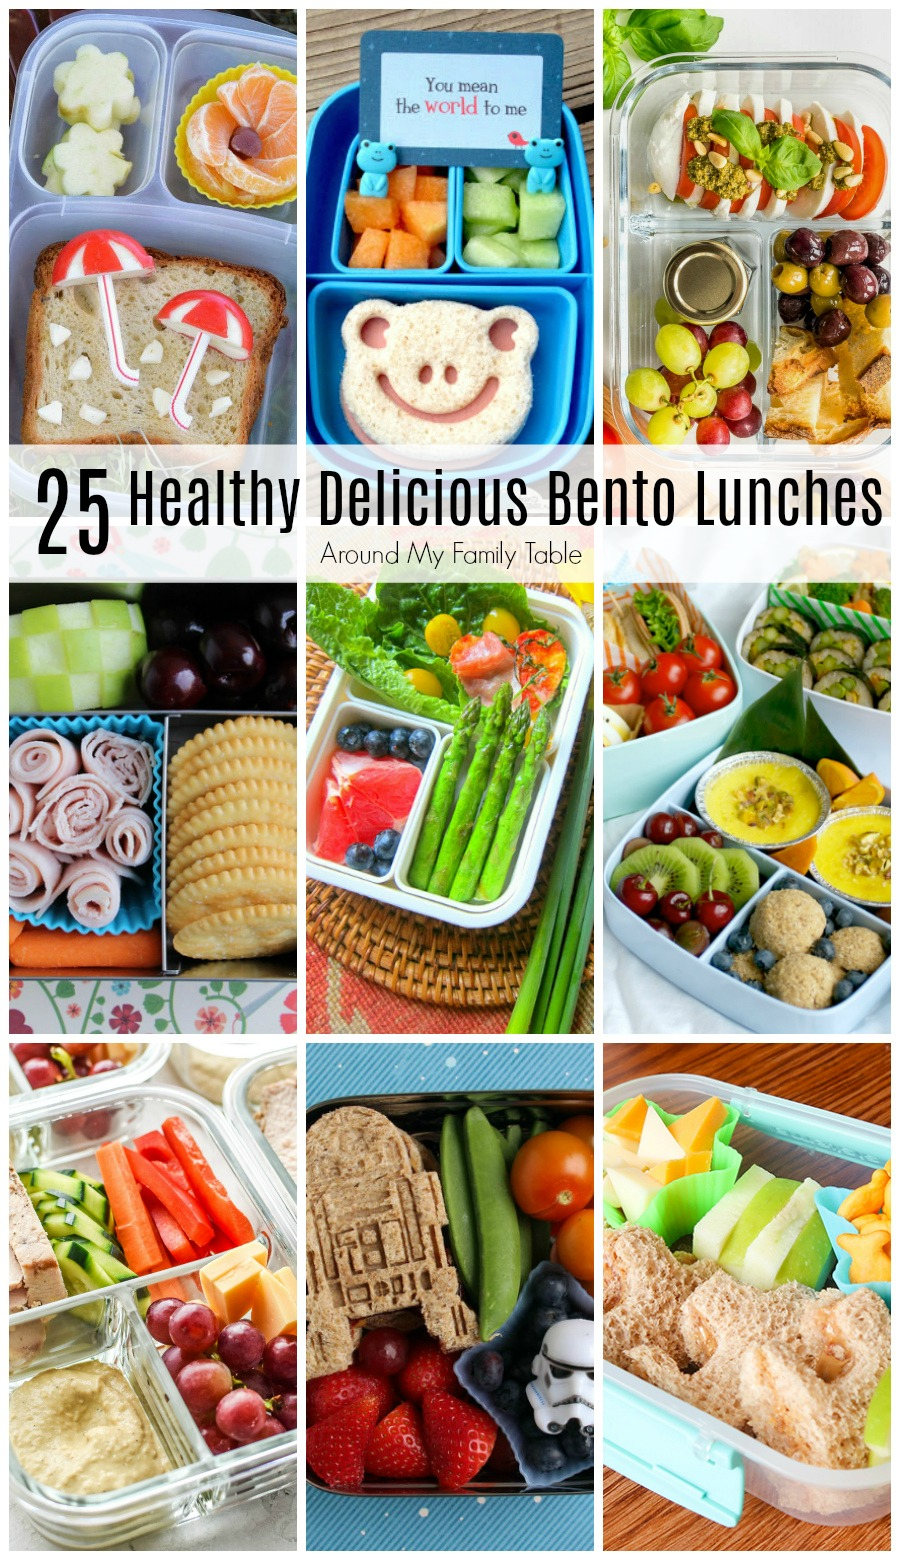 Packing school lunches can be fun with these Healthy & Delicious Bento Lunches. Kids {and parents} will love to eat them too. #bento #lunches #bentolunch #schoollunch #bentobox via @slingmama